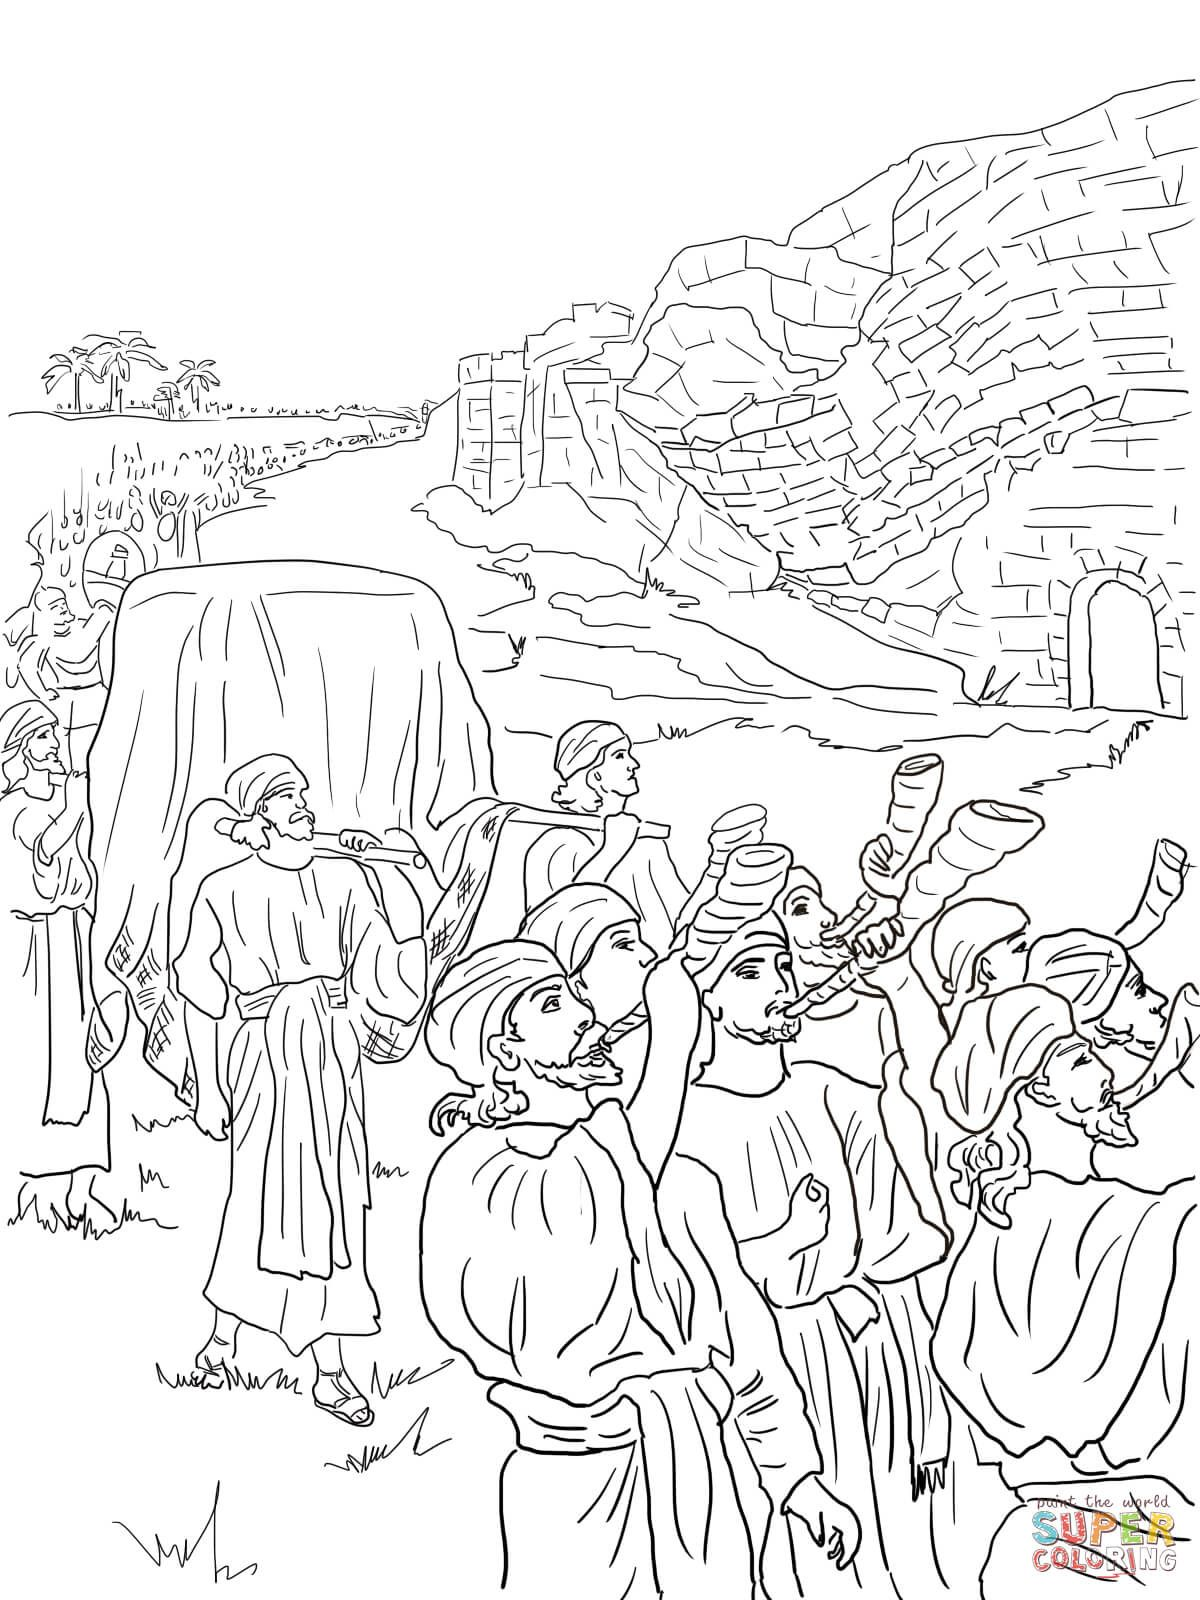 Walls Of Jericho Colo Google S. Coloring Page Of Joshua ...